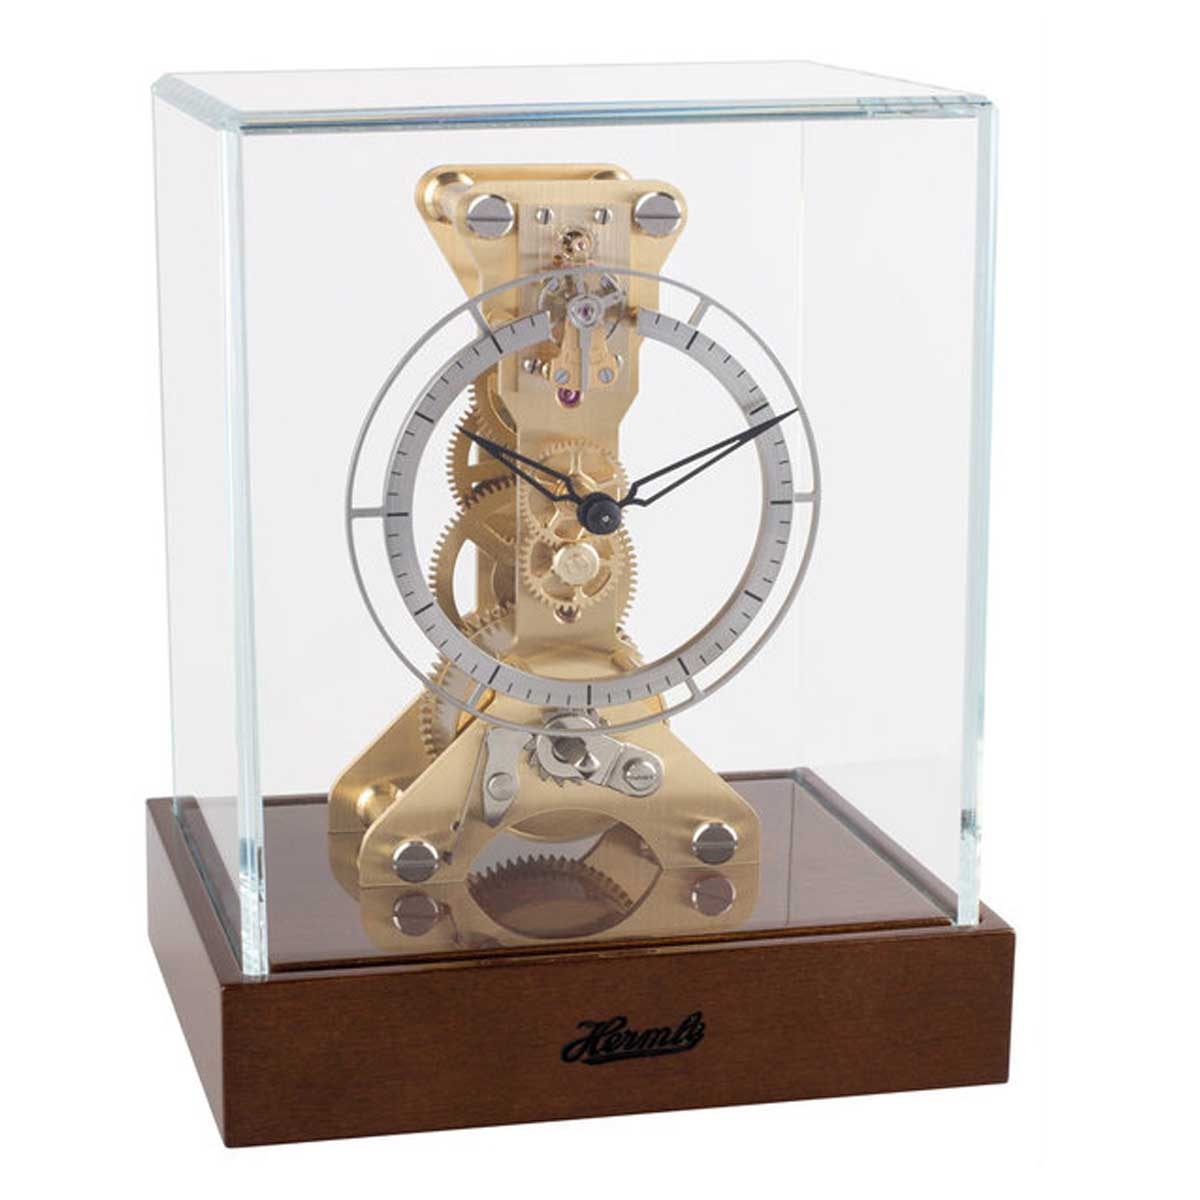 ALFORD 23047-020762   Skeleton Mantel Clock Walnut